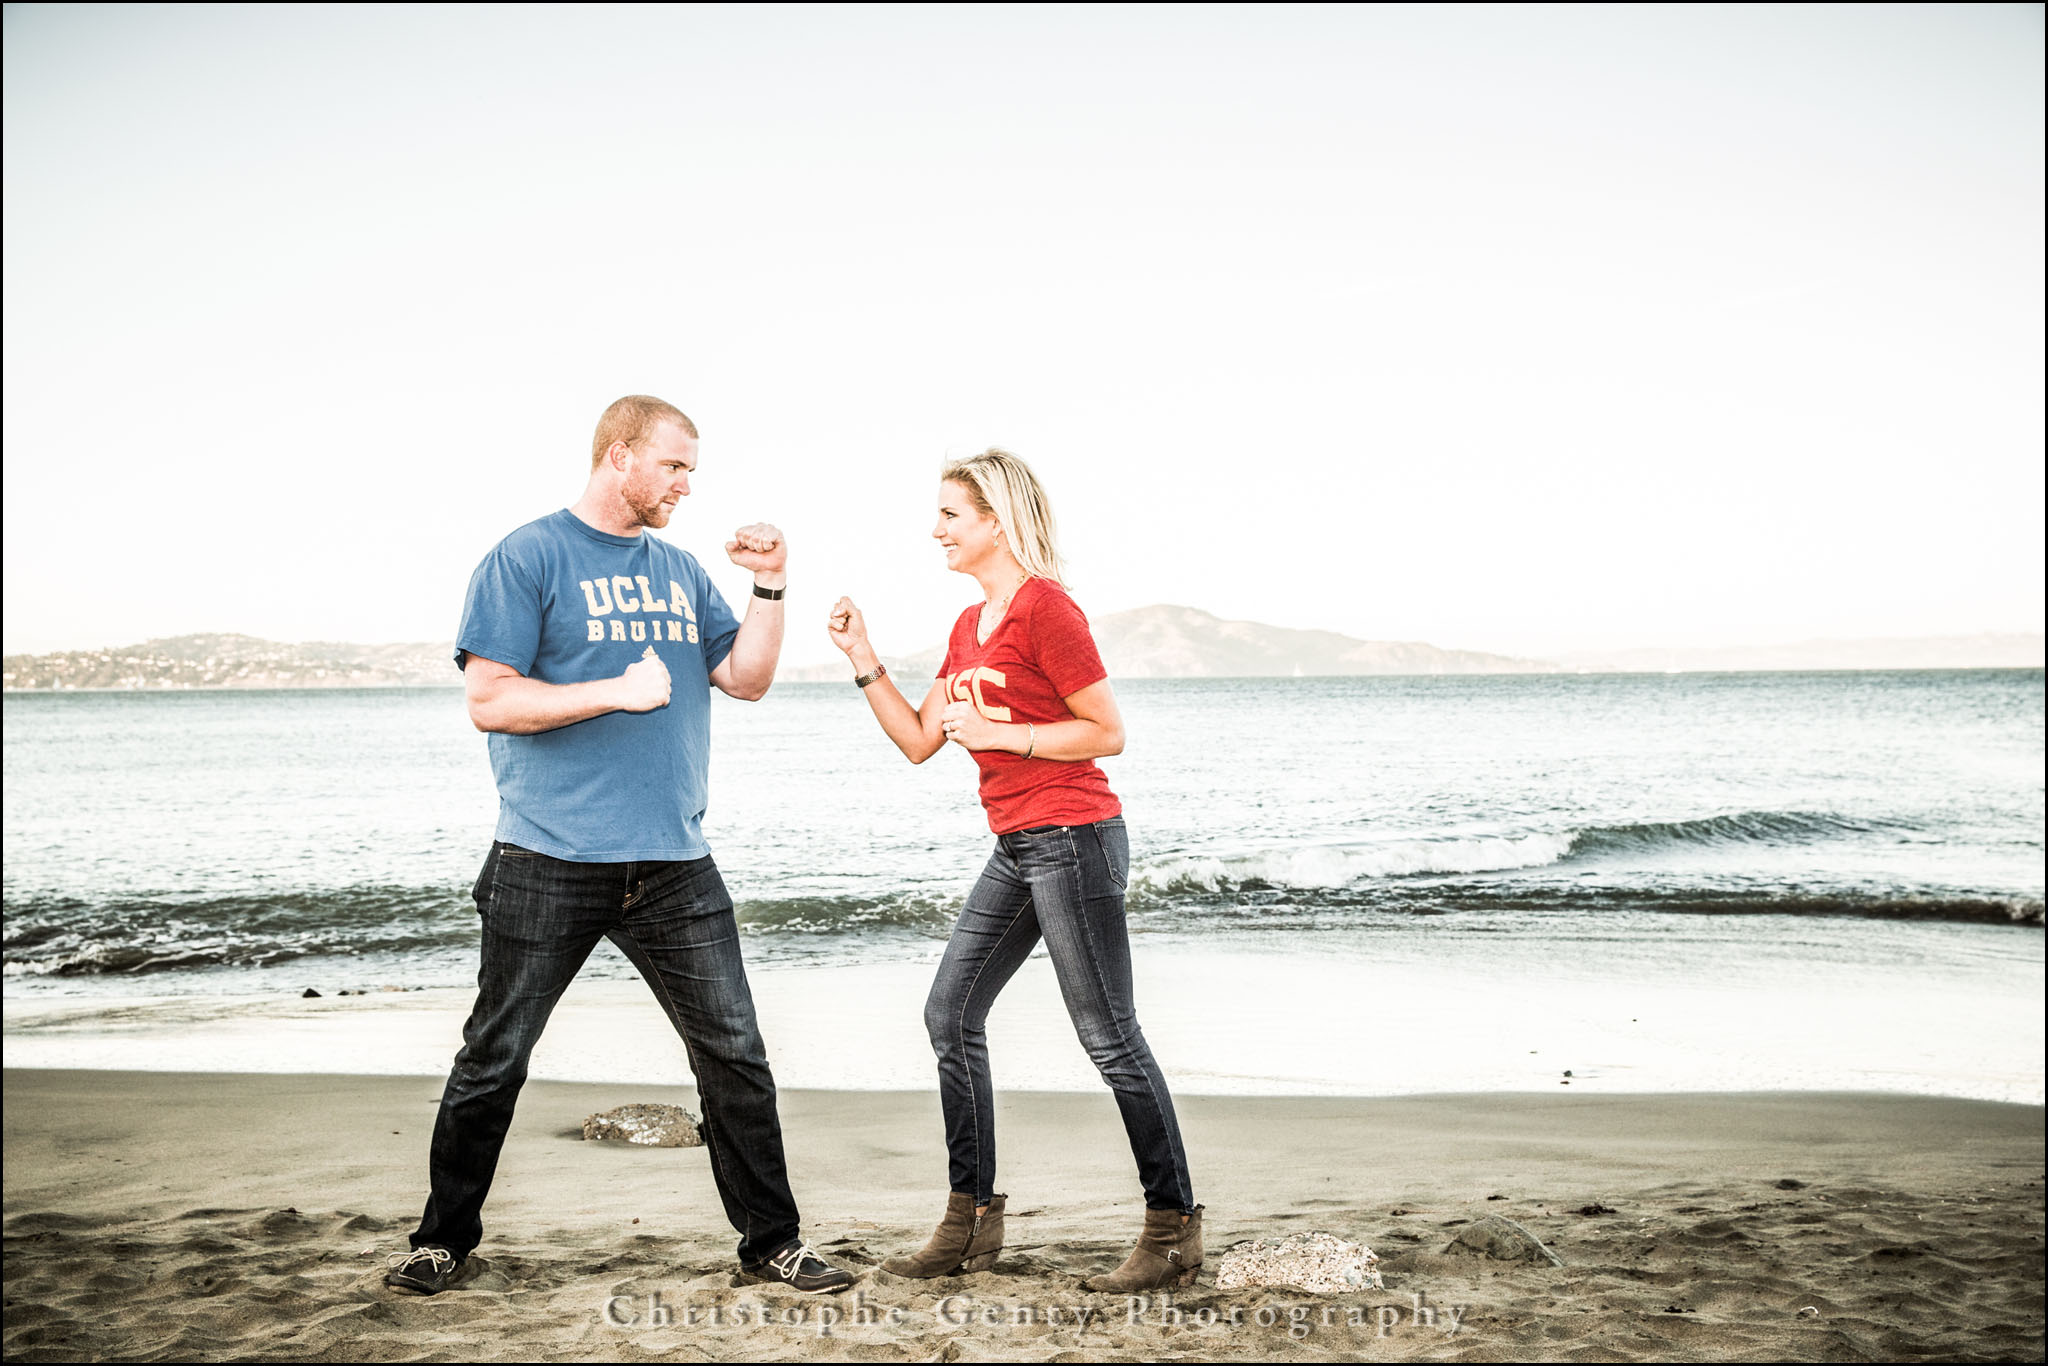 Engagement photography in San Francisco Bay Area, CA